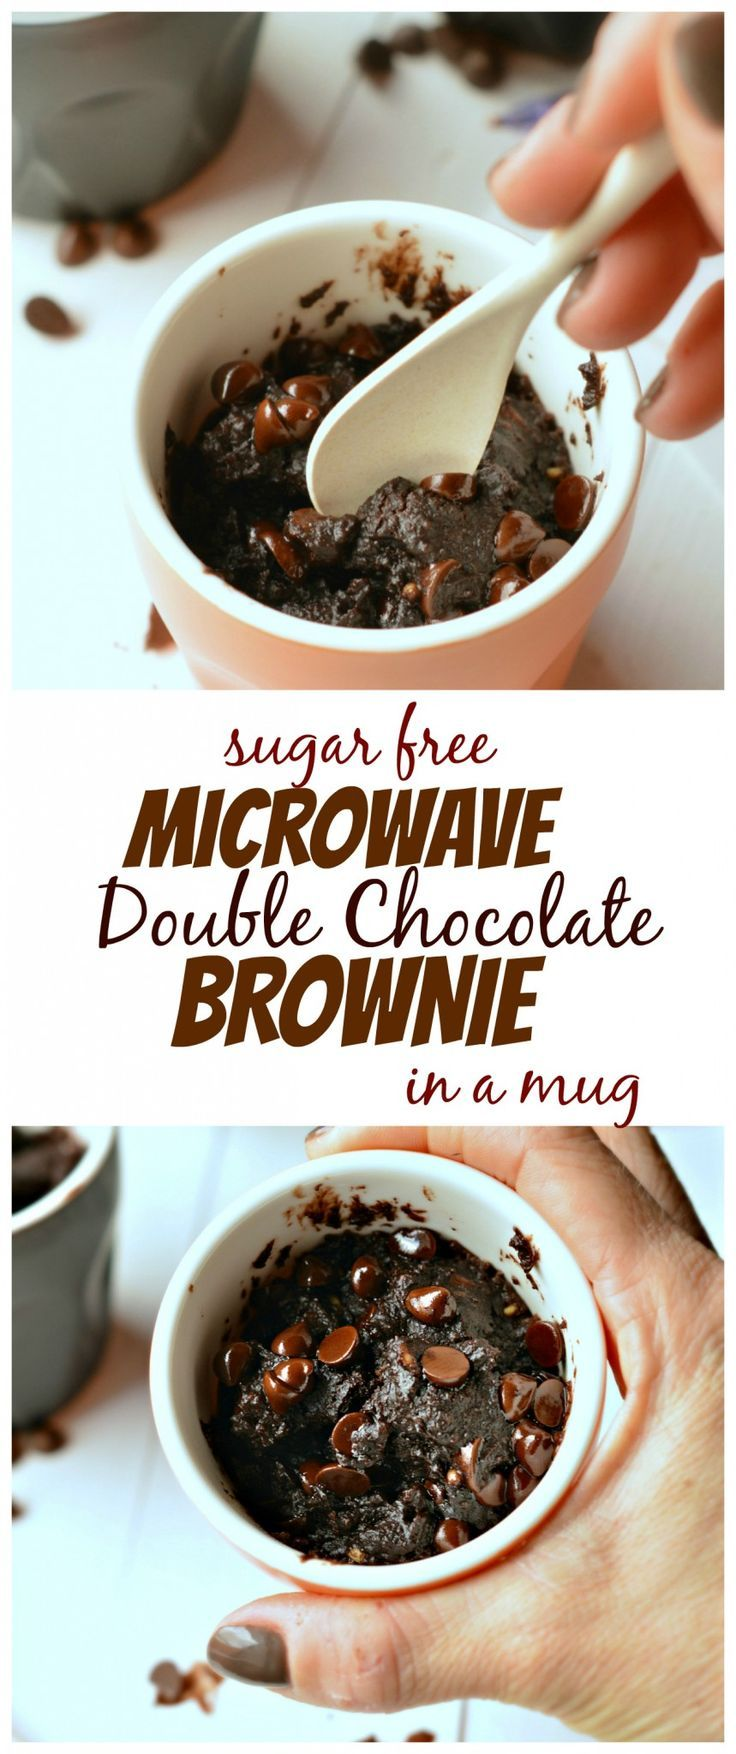 Super Easy 30 Seconds Microwave Double Chocolate Clean BROWNIE! Sugar free, gluten free and dairy free but so yummy! Come and get the recipe you are only 30 seconds away from enjoying this cute guilt-free brownie. #brownie #chocolate #sugarfree #glutenfree #microwave #quick #easybaking #baking #recipe #food